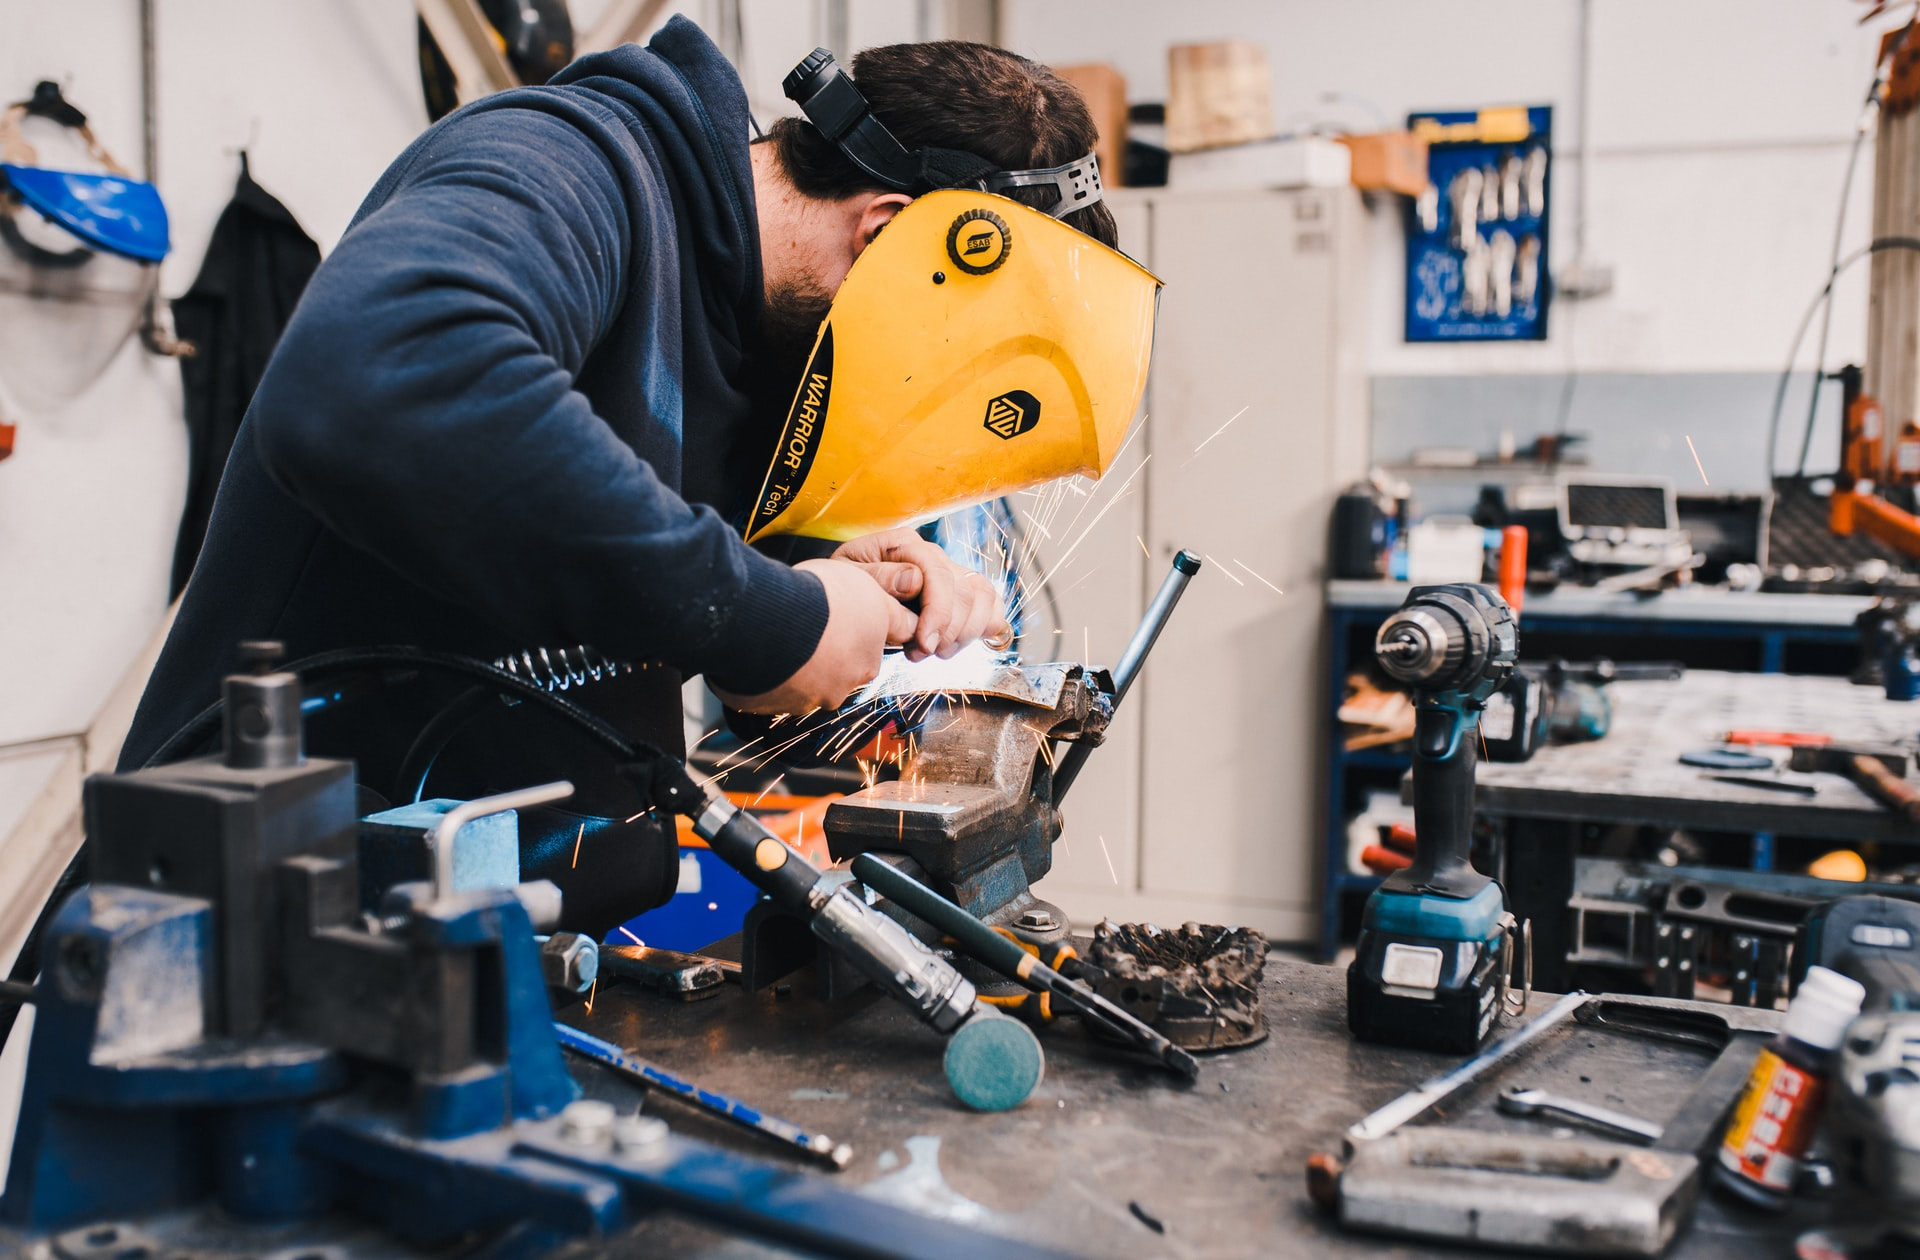 How to Create and Maintain a Safe Manufacturing Workplace